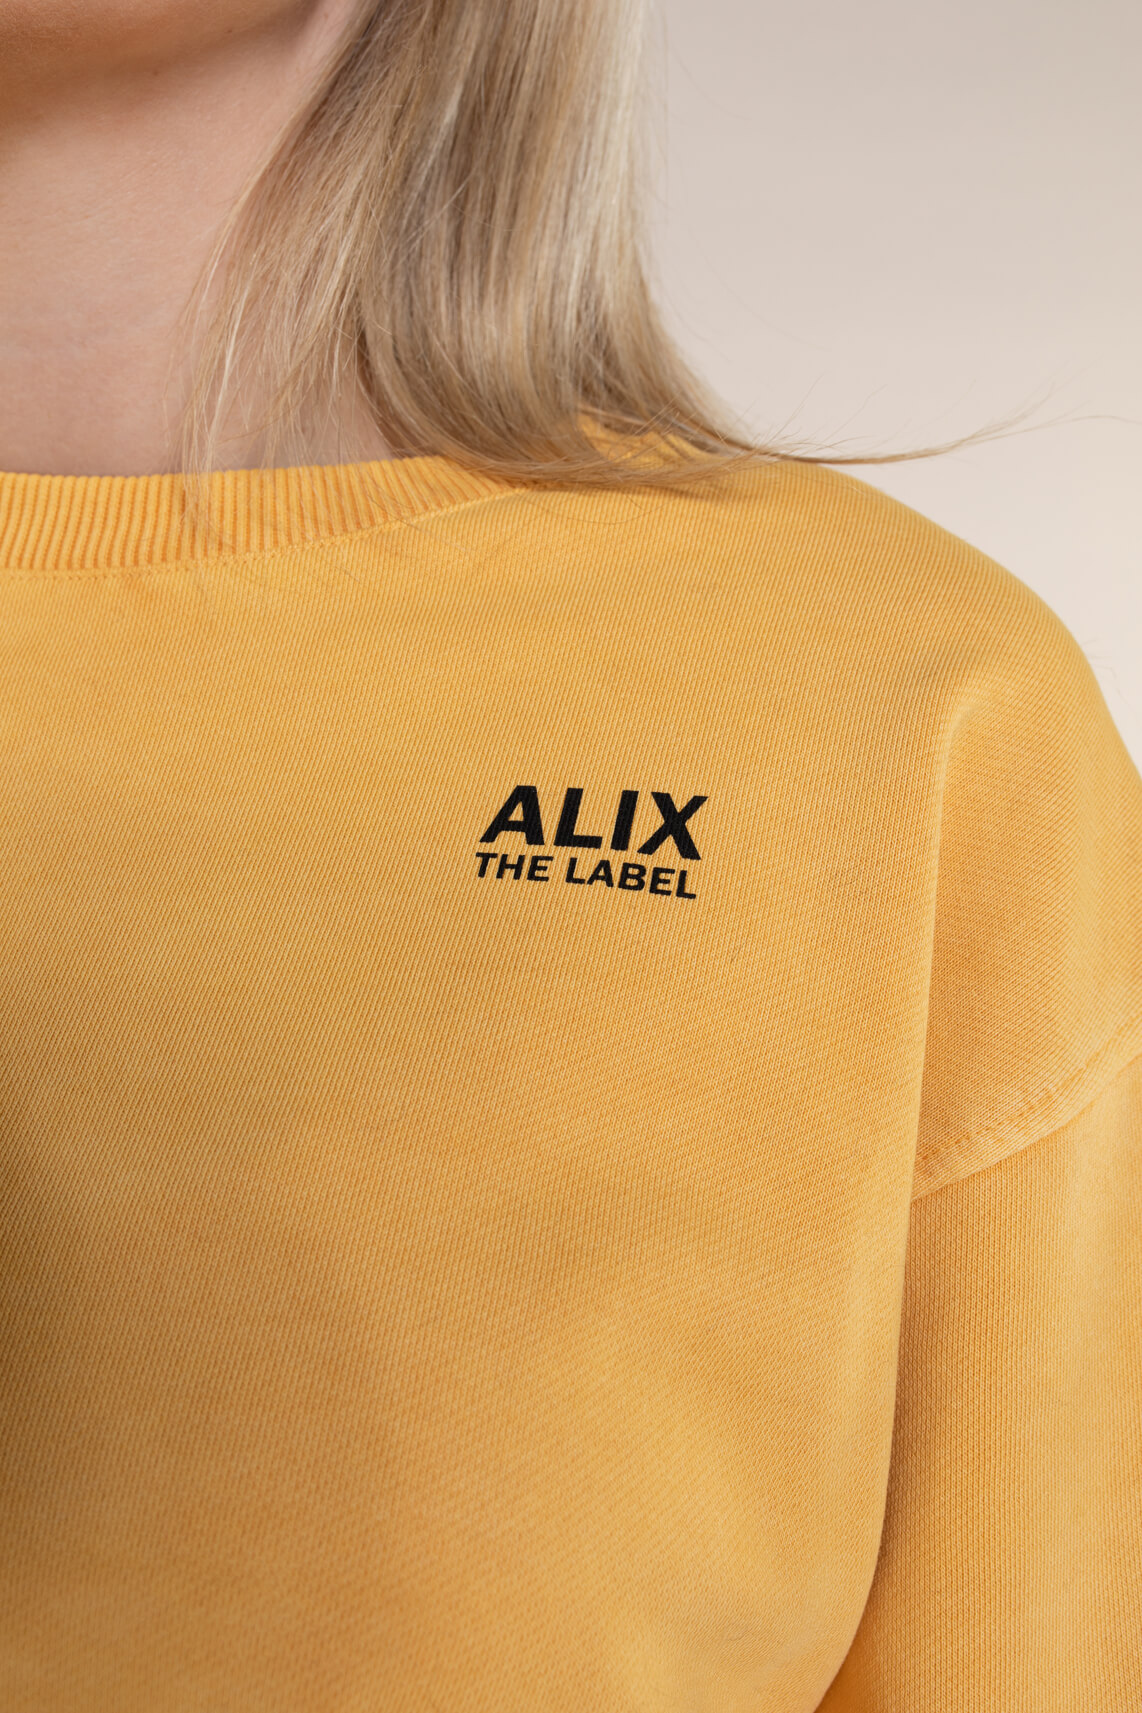 Alix The Label Dames Oversized On Tour sweater geel